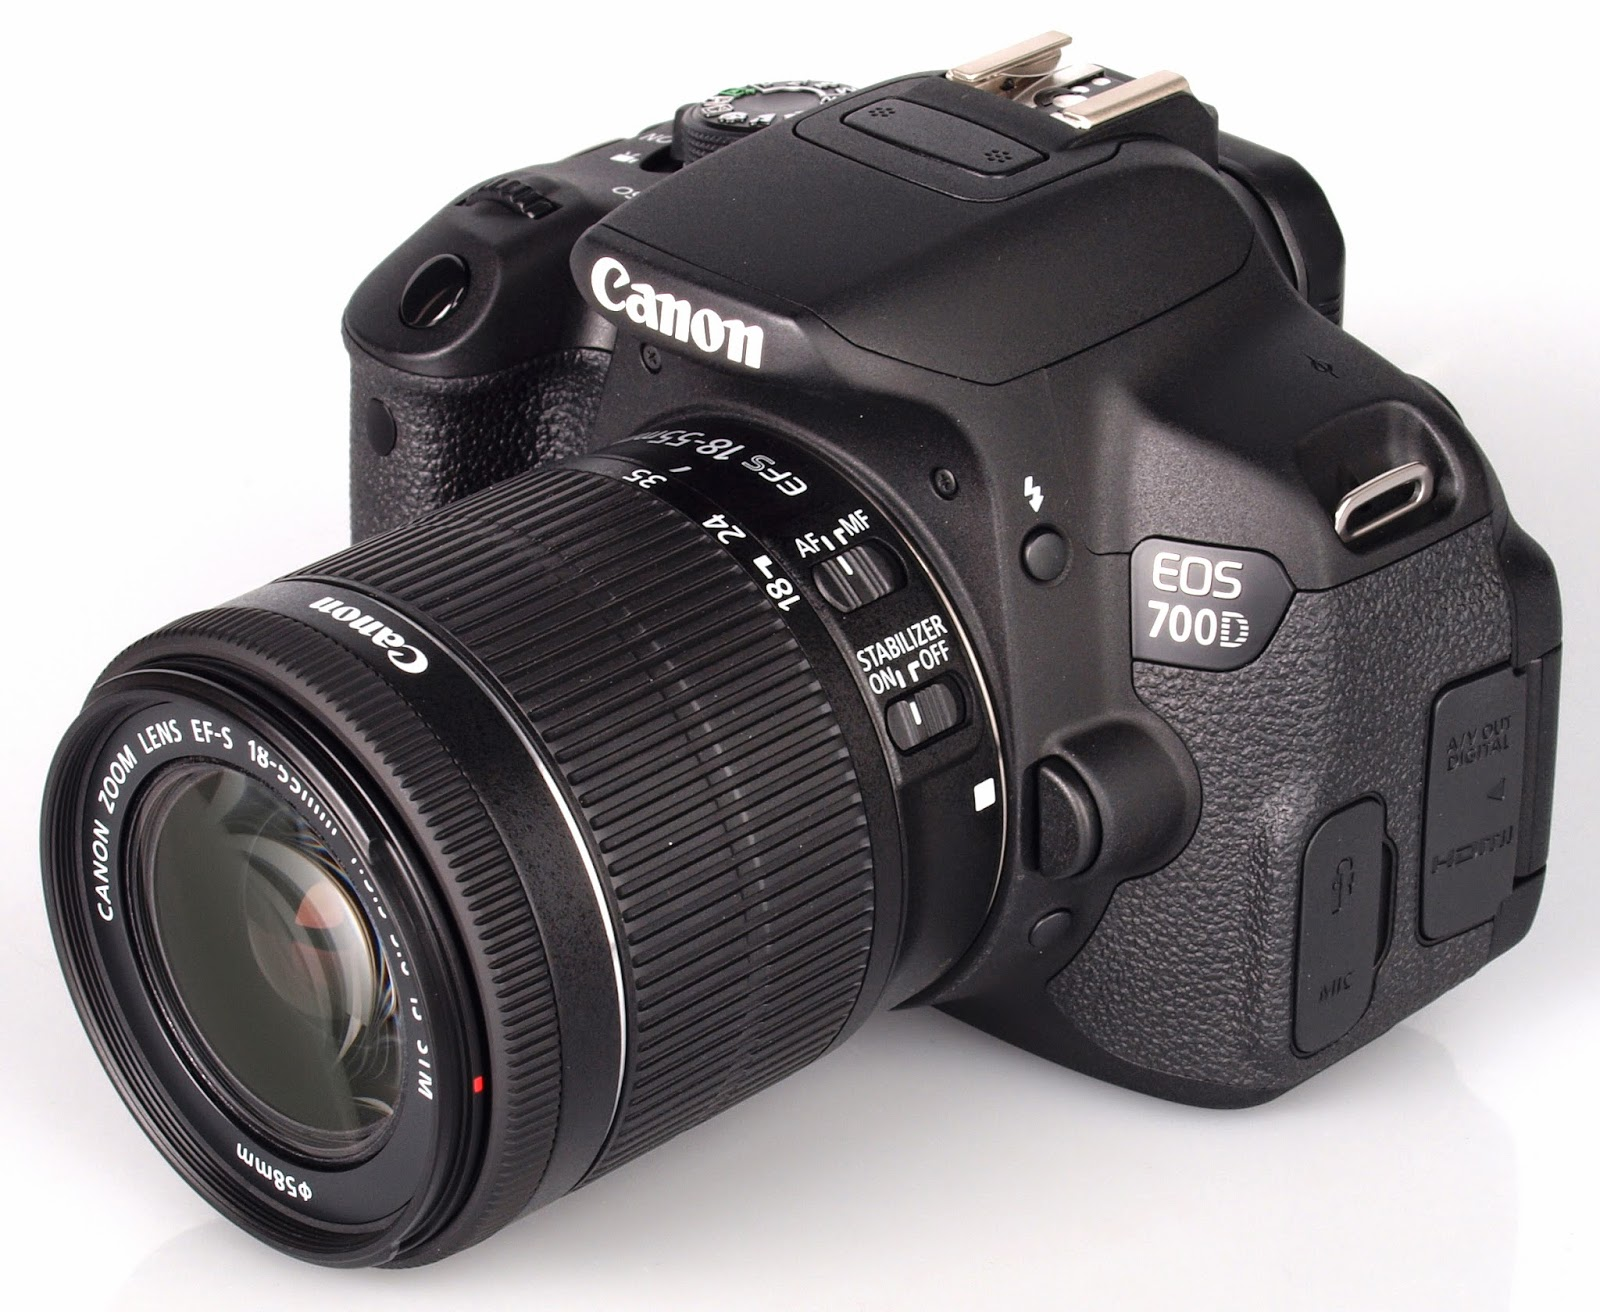 Canon EOS 700D, entry-level DSLR, Full HD video, new canon, digital zoom, creative filters, art filter, macro photo